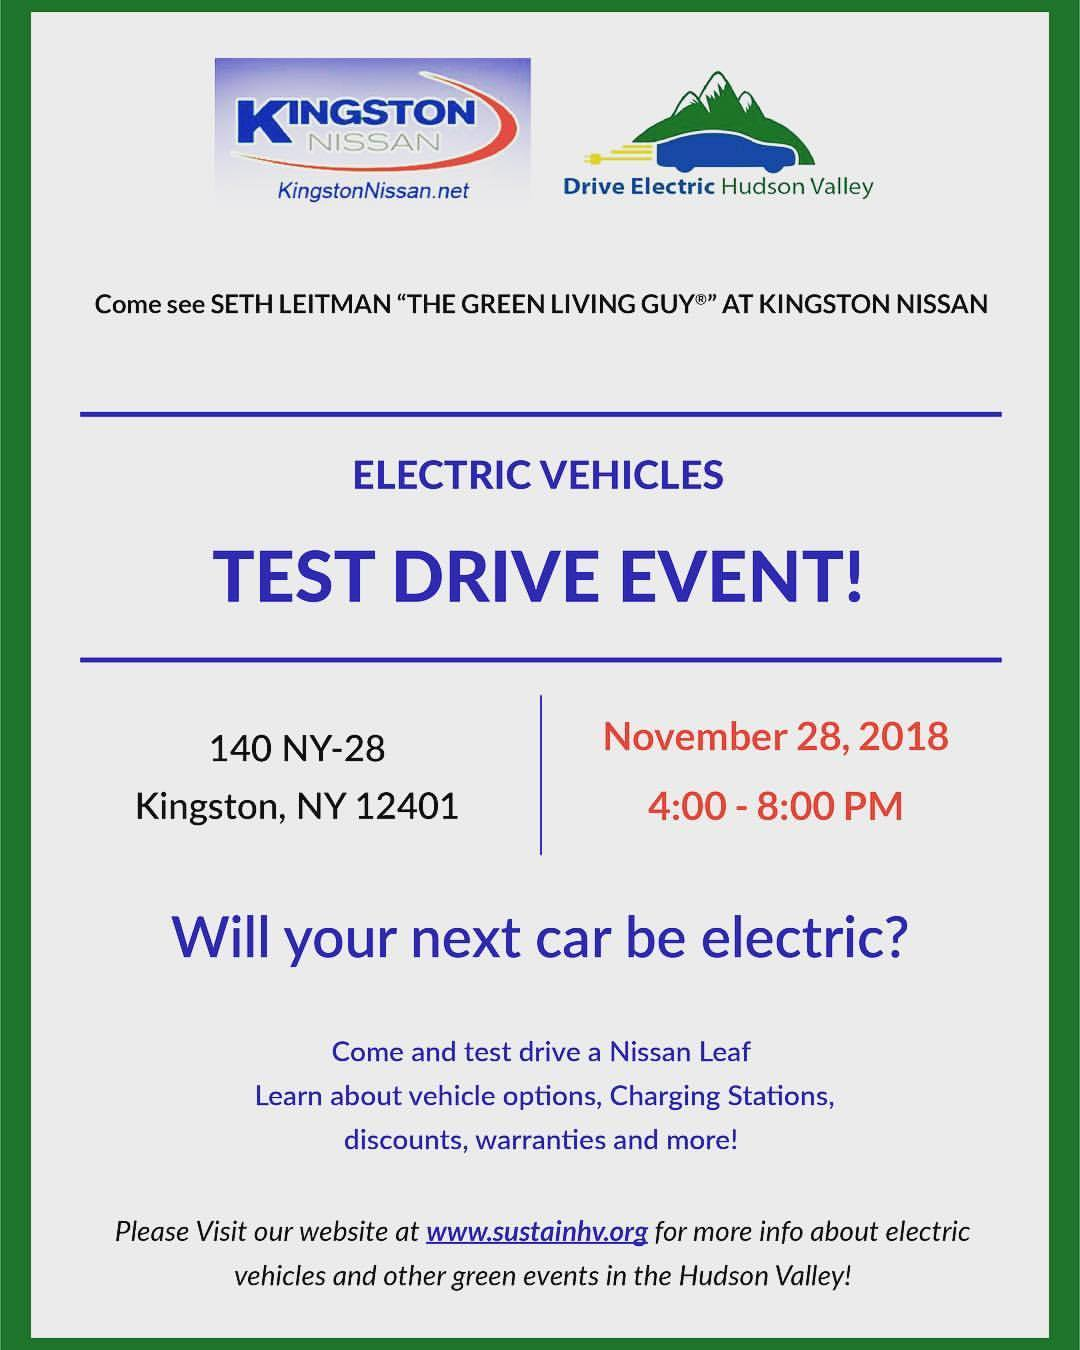 Who's ready to kick off 8 weeks of electric vehicle savings at @kingstonnissanny ?? Go see @robertrolleri because he's got the @nissanusa #leaf inventory on hand. Starting Nov 28 from 4-8 pm.  (at Kingston Nissan)   https://www.instagram.com/p/BqrPeeqH-DN/?utm_source=ig_tumblr_share&igshid=1v6ln3afgsdn4